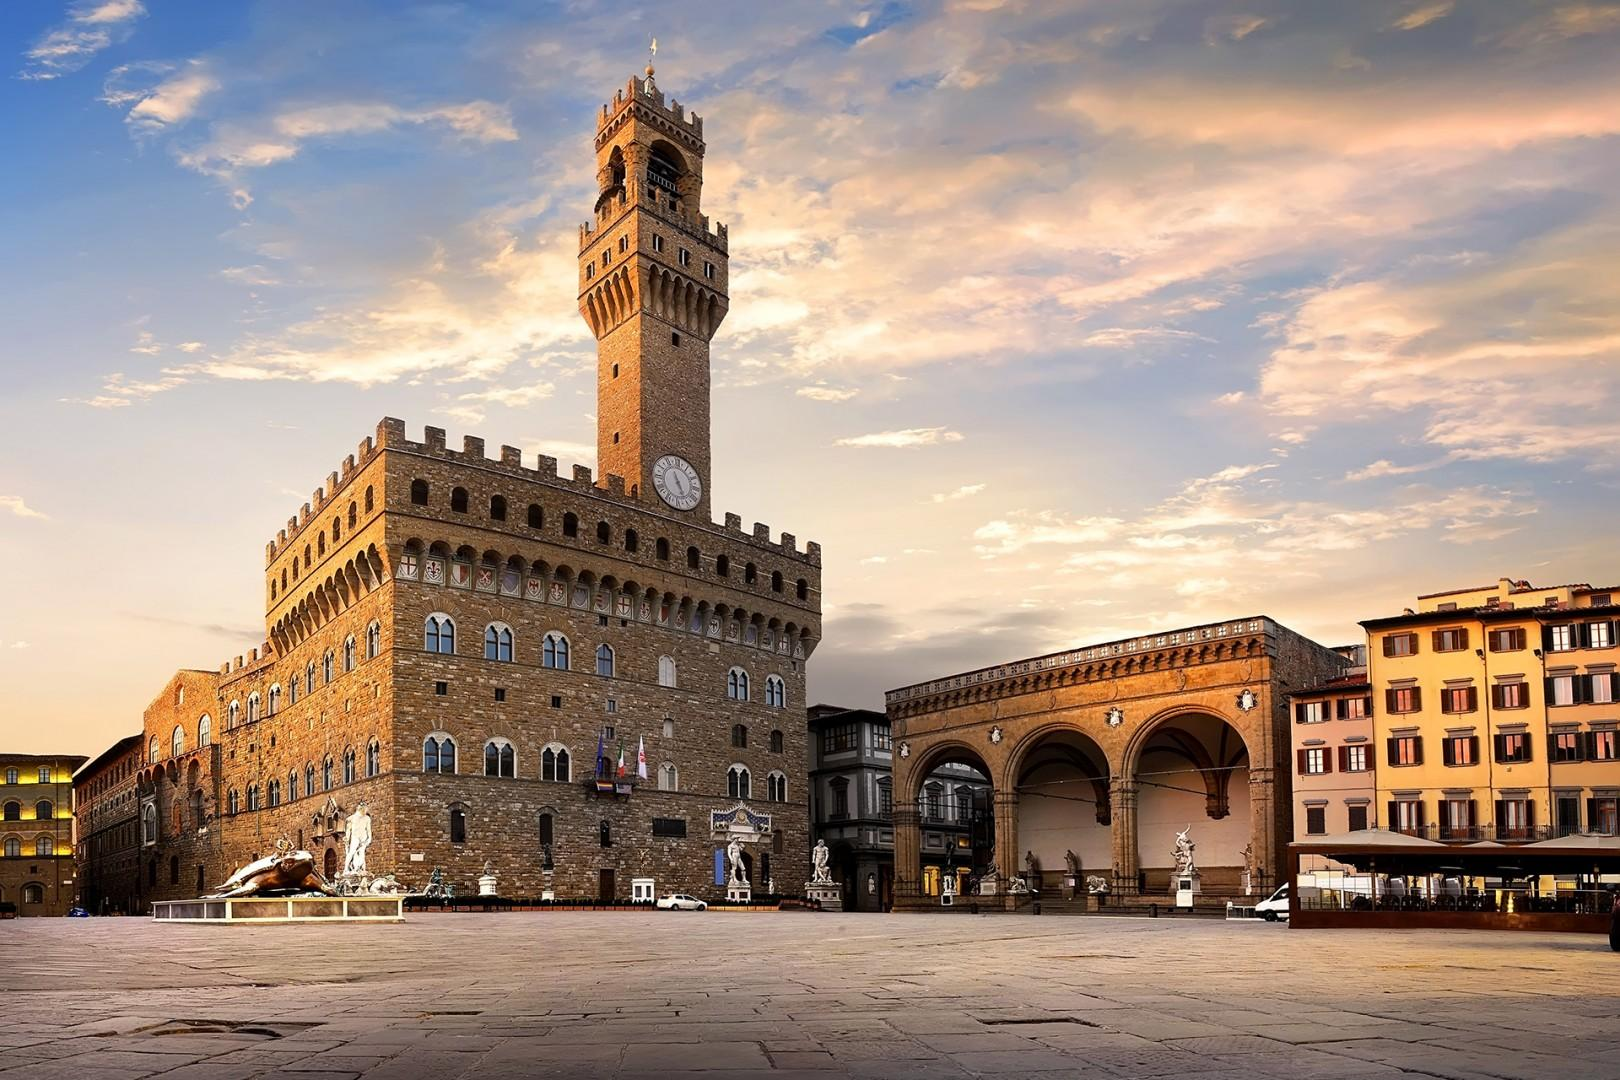 Piazza Signoria was the heart of Florence during the Renaissance. Everywhere you look find fascinating historical elements.